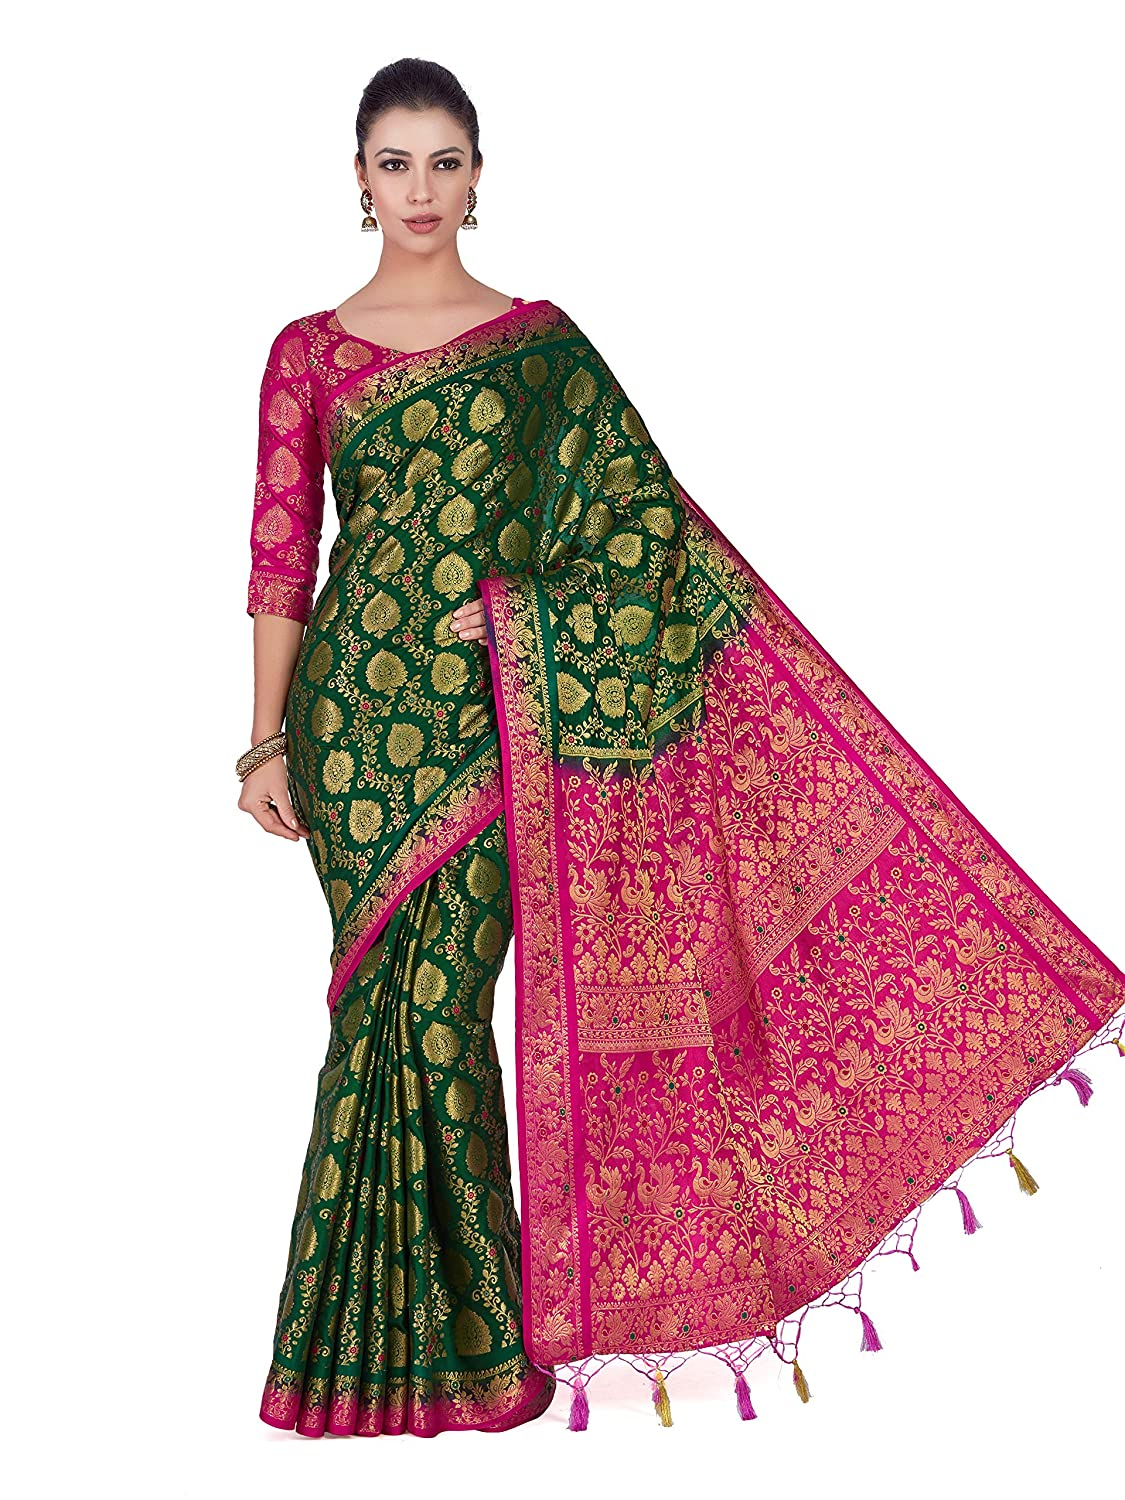 478127ae8cbfed Mimosa Art silk saree Kanjivarm Pattu style With Contrast Blouse Color   Green (4282-65-2D-BGRN-RNI)  Amazon.in  Clothing   Accessories